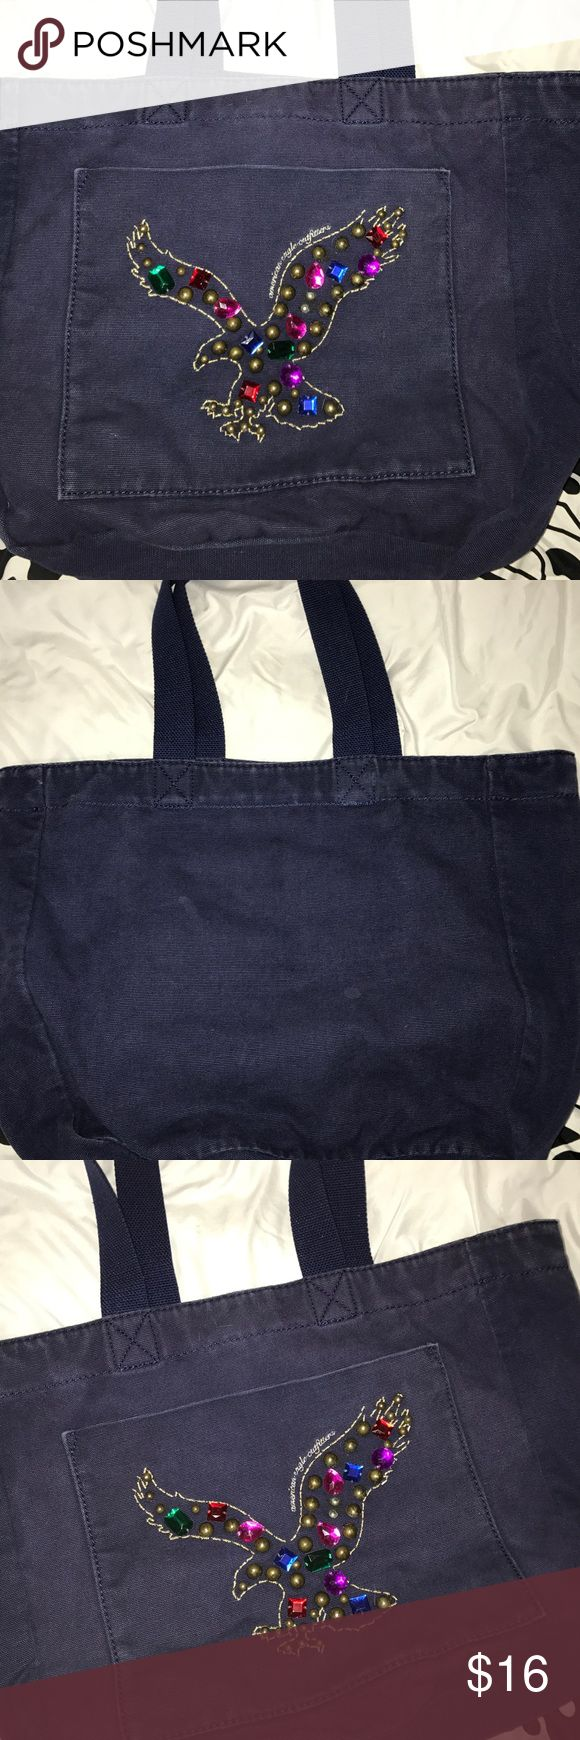 American Eagle Tote Bag Small stain on inside of bag, in good condition. American Eagle Outfitters Bags Totes